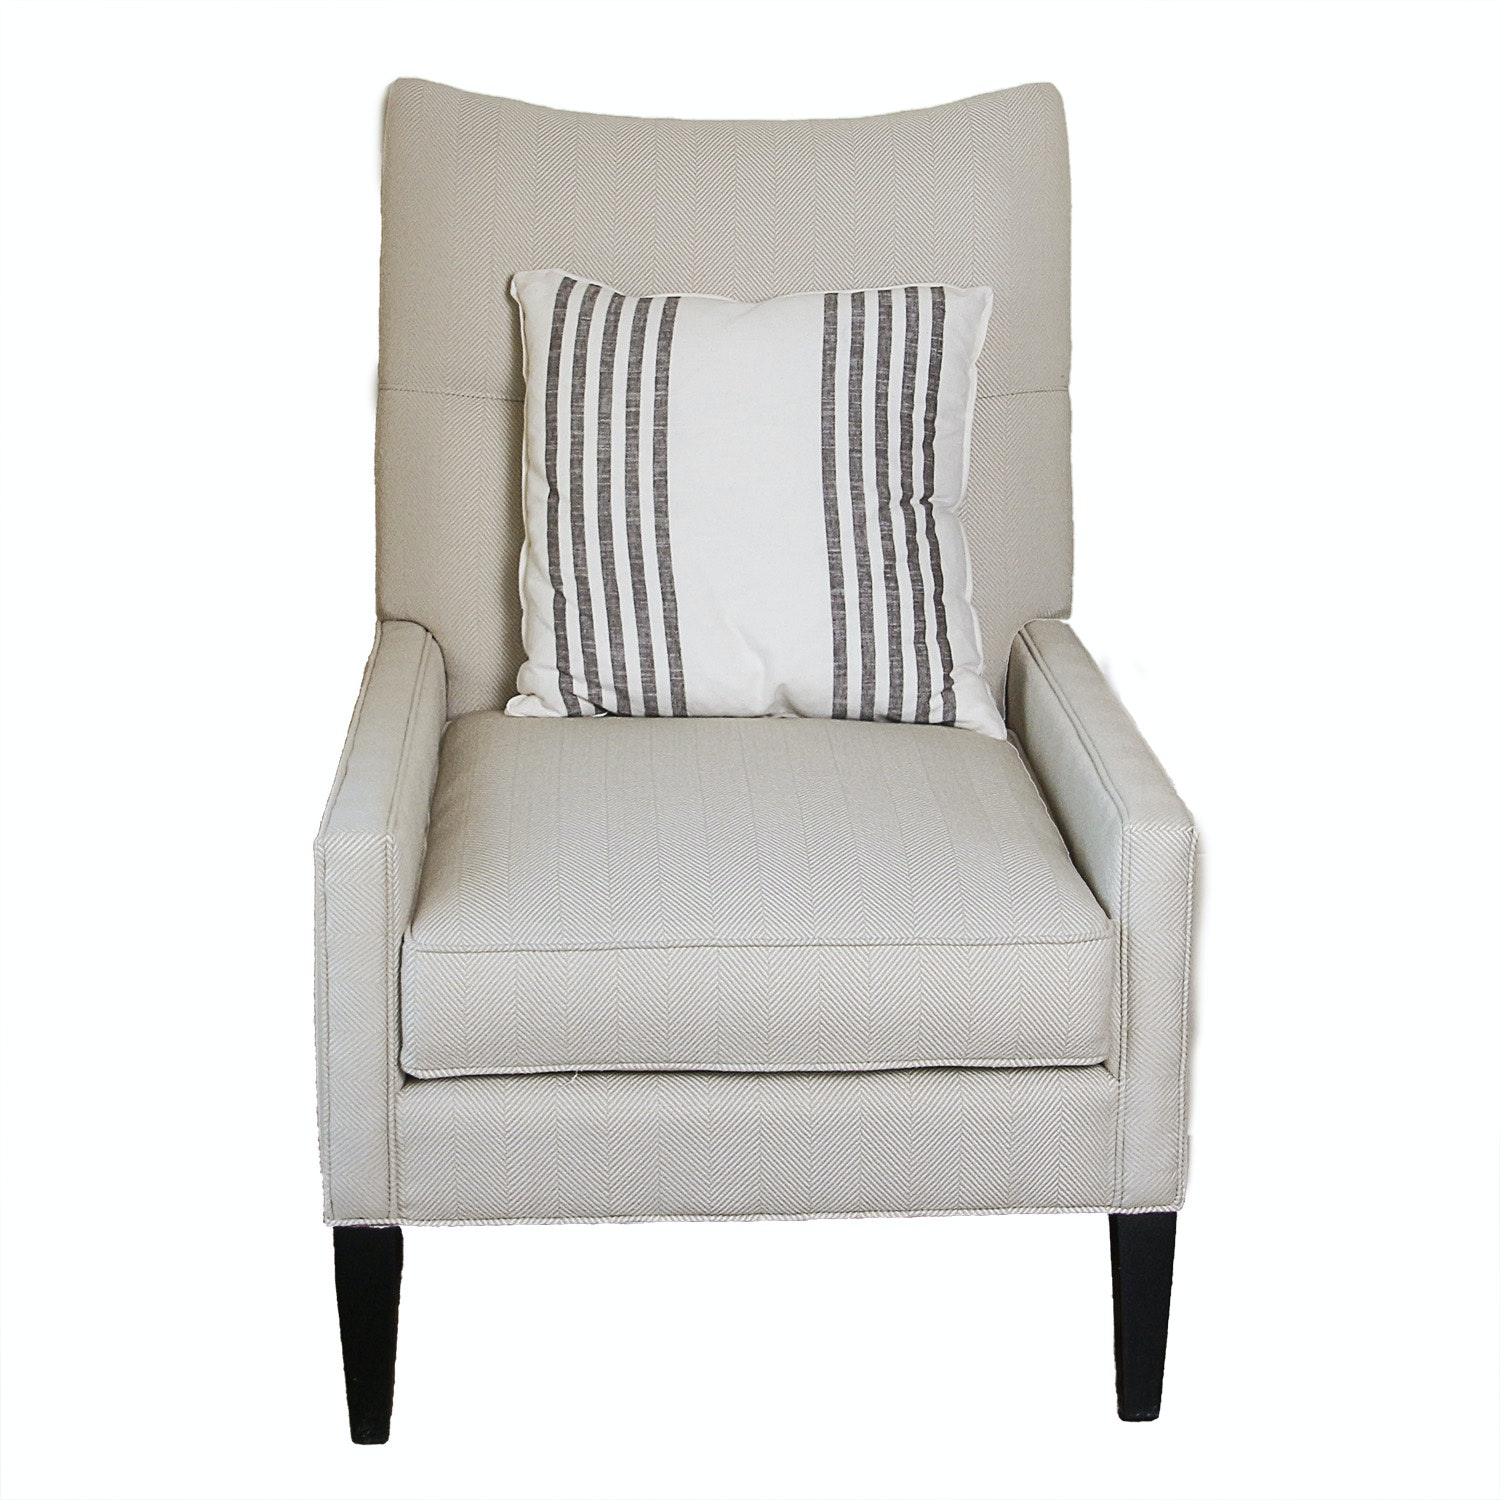 Contemporary Upholstered Armchair by Southern Furniture Company